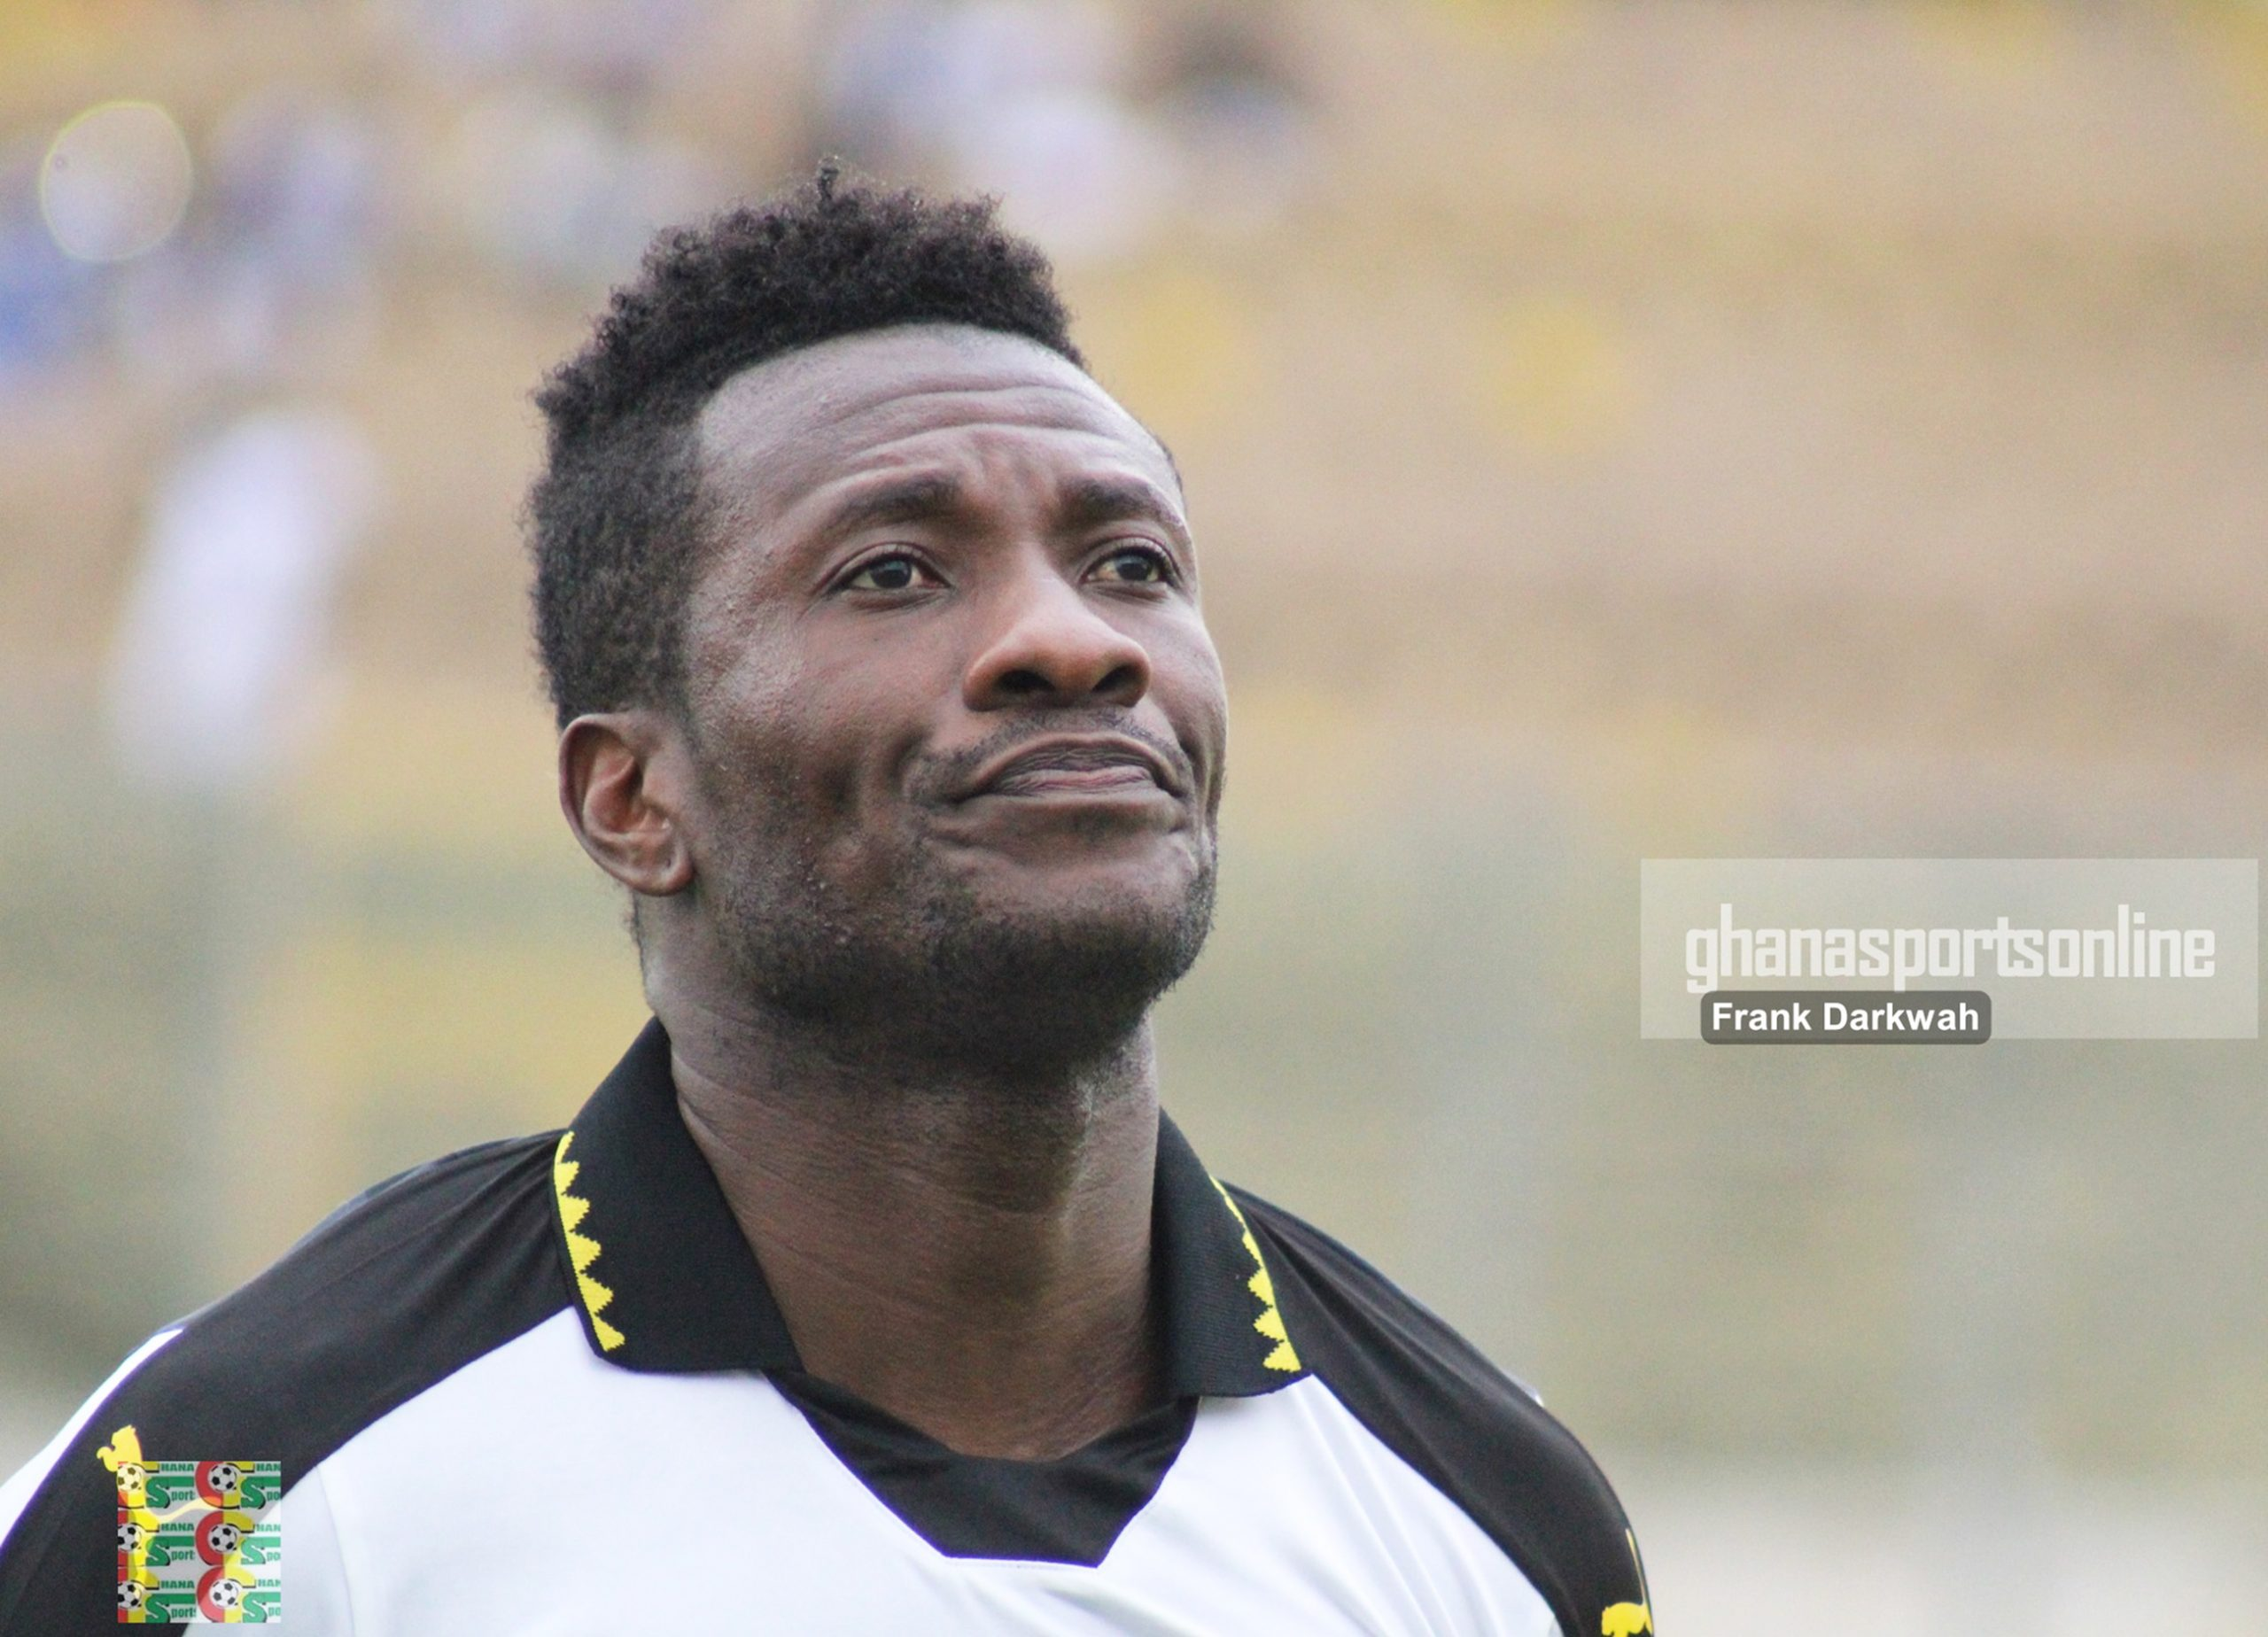 Asamoah Gyan is likely to retire after AFCON 2019 - Player's manager reveals